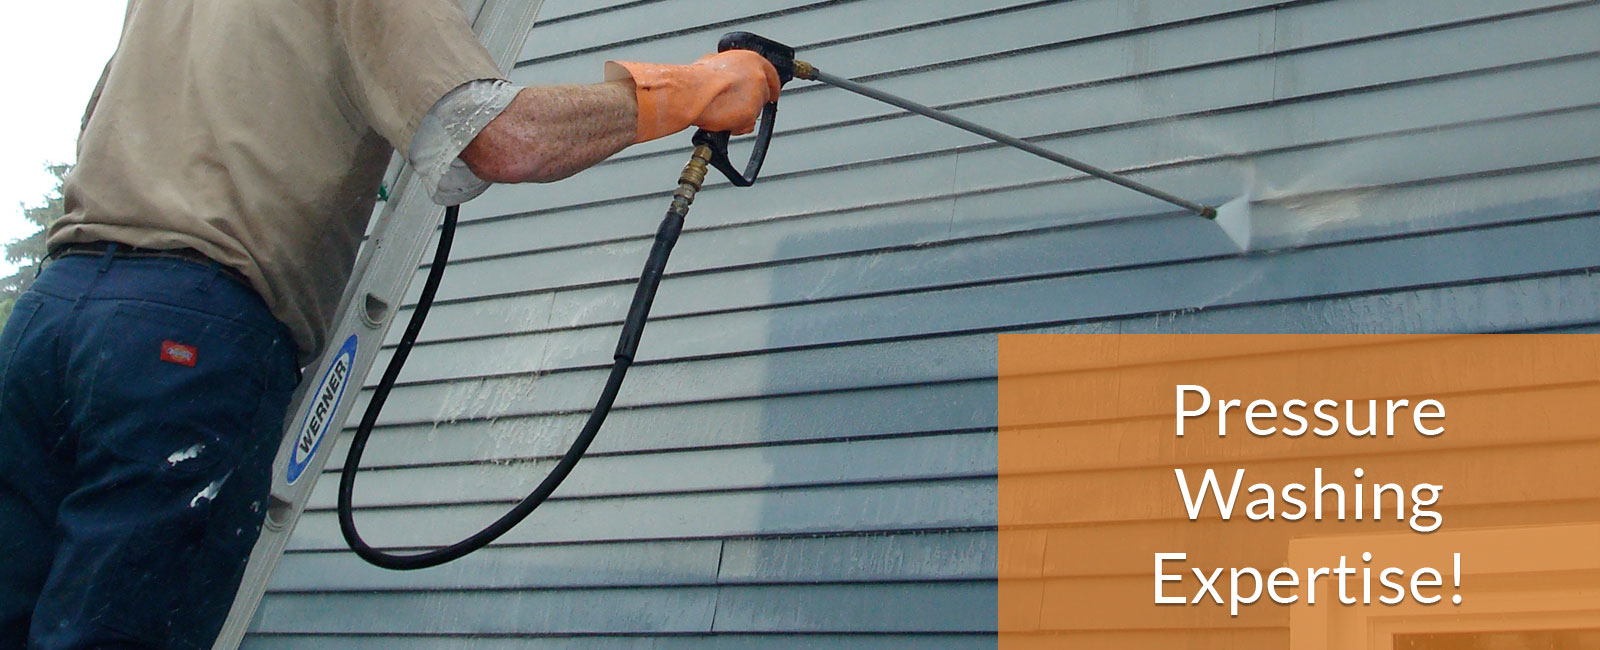 Pressure Washing Services in Bethlehem PA